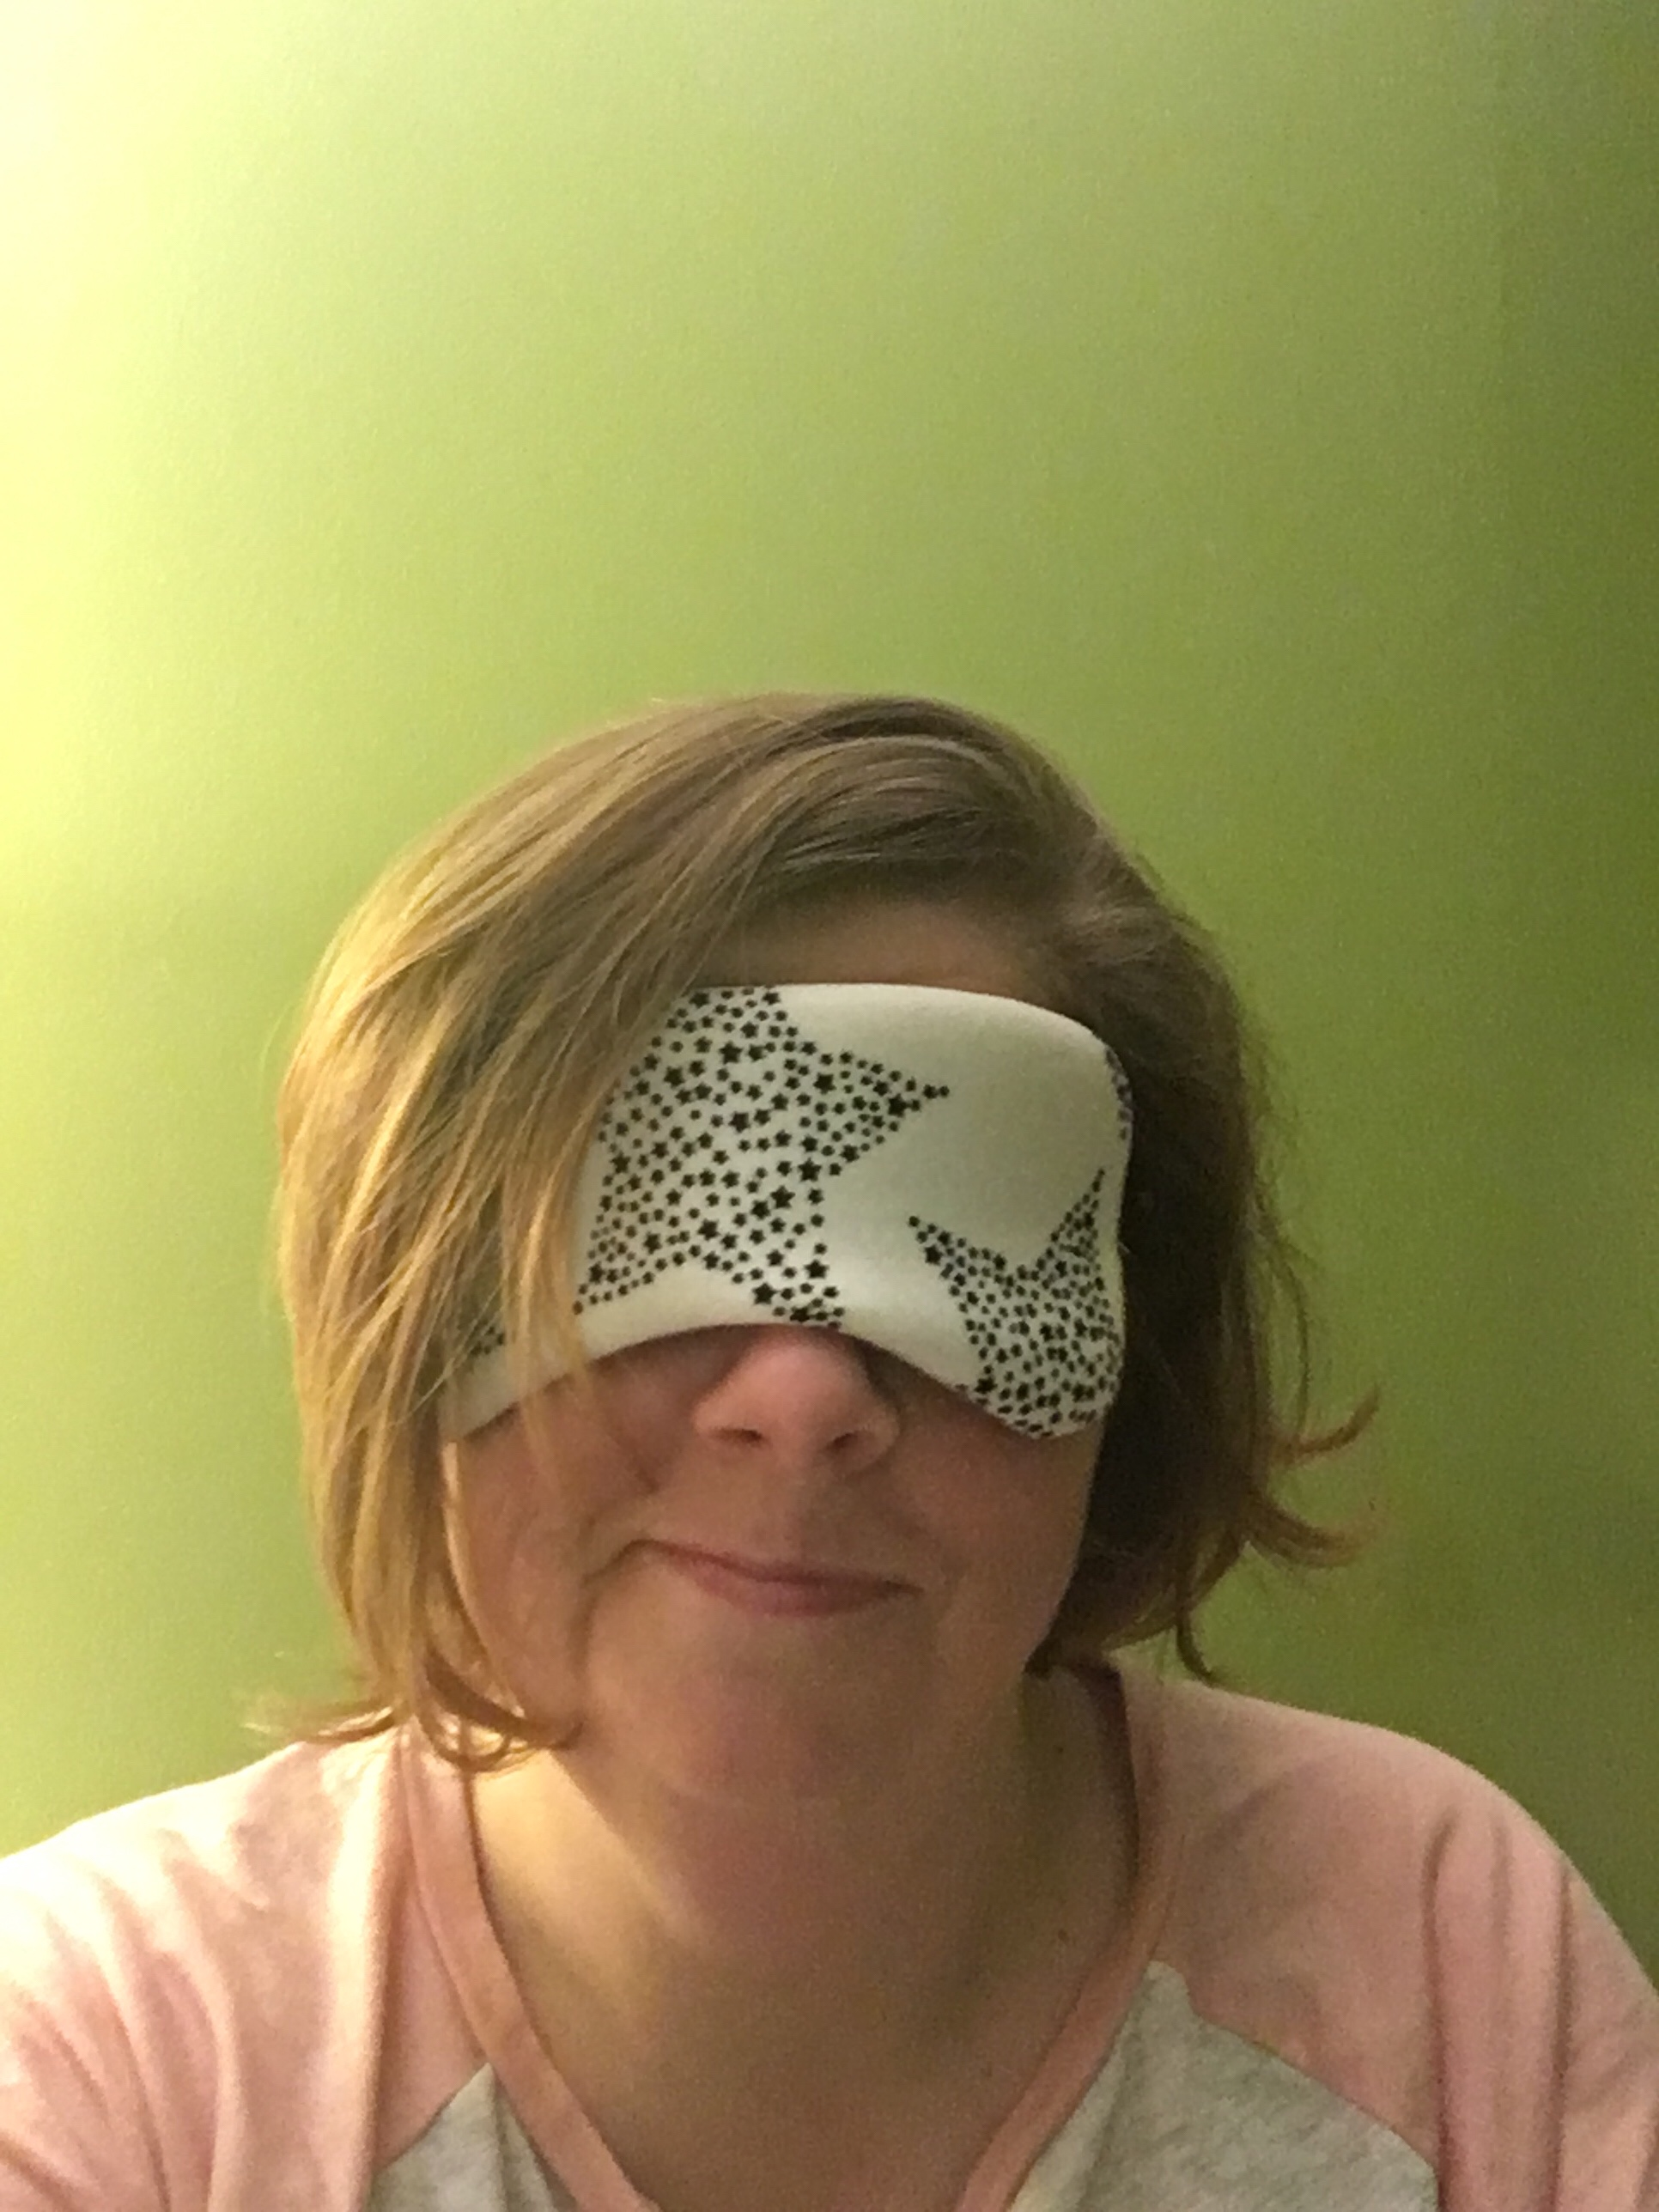 The author, a white woman in her 40s with chin-length brown hair, is wearing pink and white pyjamas and  a white sleep mask that has black stars on it. She is smirking. The background of the photo is green.